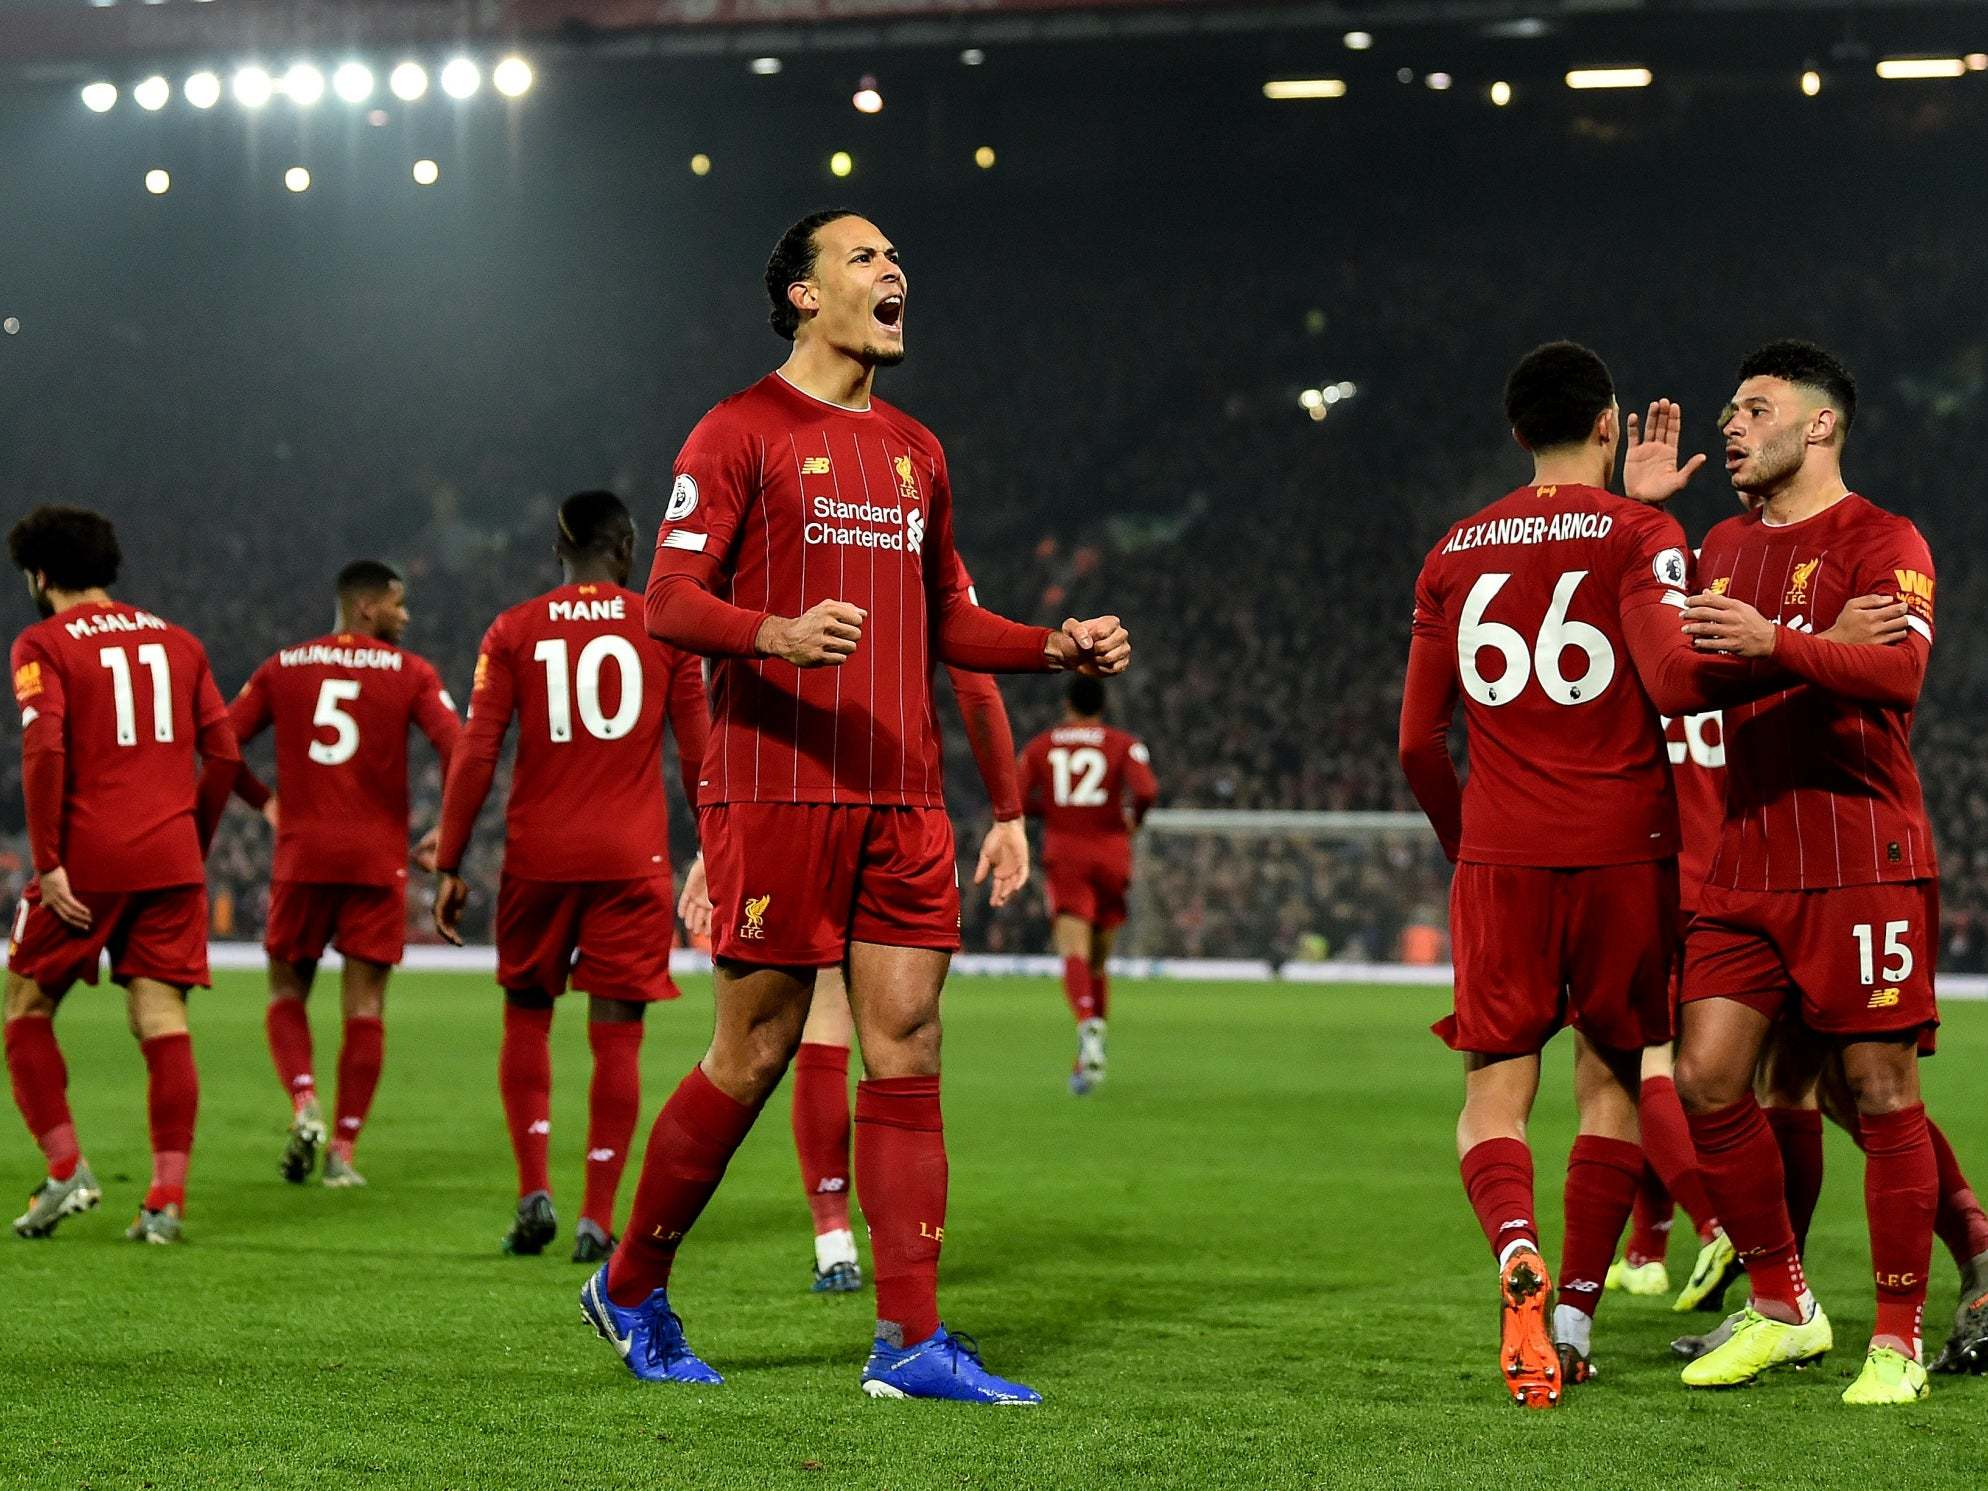 Liverpool fans think they've won the league – and everyone else should believe them